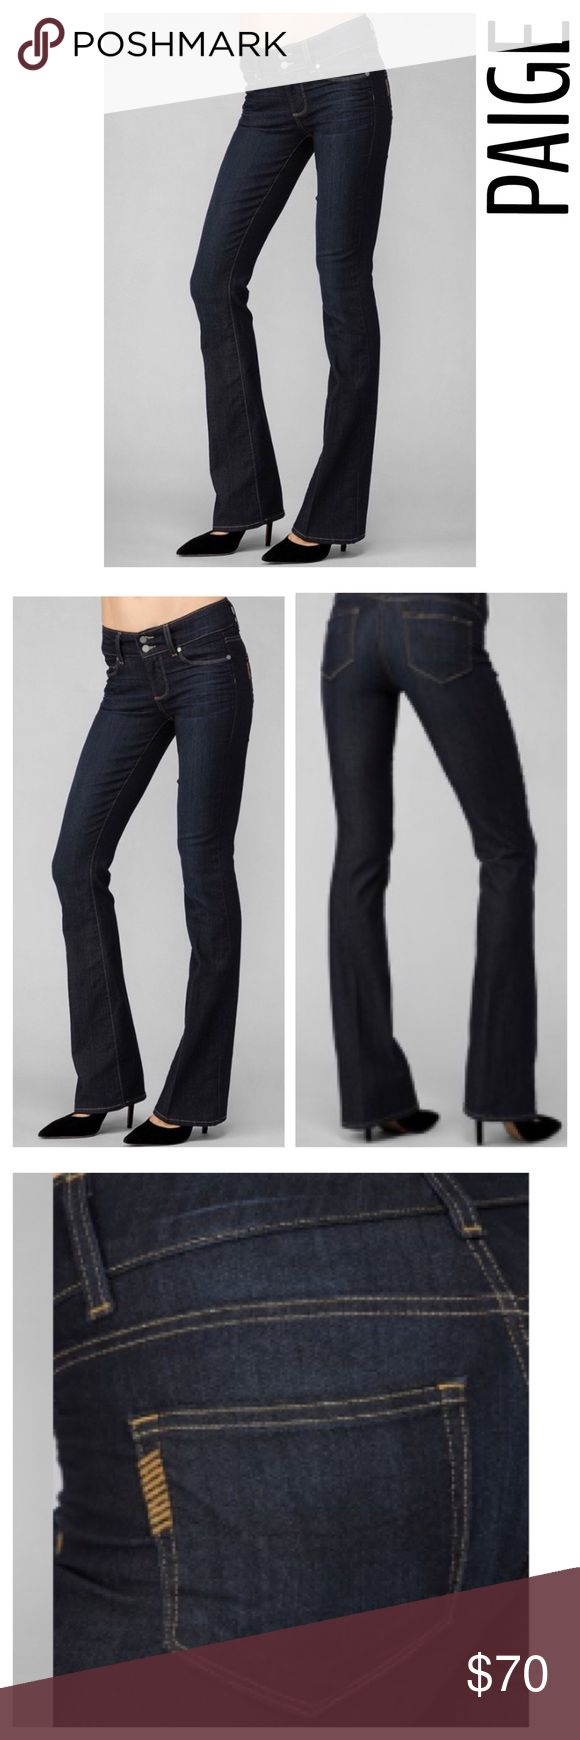 """Paige Jeans Size 28 Hidden Hills Hi Rise Bootcut Paige Jeans Size 28 Hidden Hills Hi Rise Bootcut, color """"Stream"""" dark wash. Never worn, never washed. Unique double button waistband. These have a lightly faded line on the bottom of one leg. See last photo. It would probably blend in after they are wash. Size 28. (Inventory C17). PAIGE Jeans Boot Cut"""